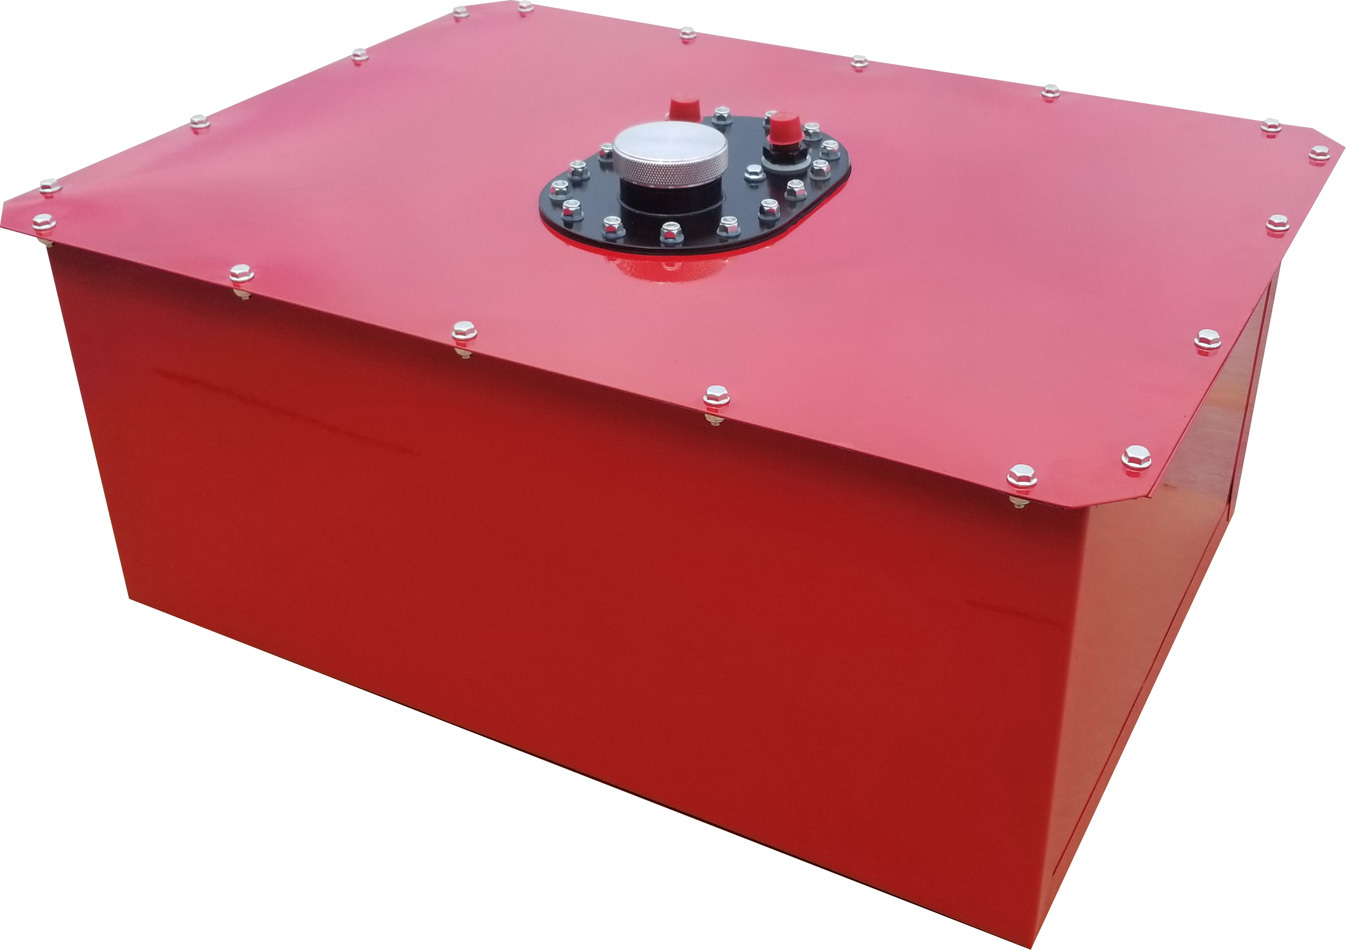 RCI 1162C Fuel Cell and Can, Circle Track, 16 gal, 25 x 19 x 11 in Tall, 8 AN Male Outlet, 8 AN Male Vent, Steel / Plastic, Red, Each